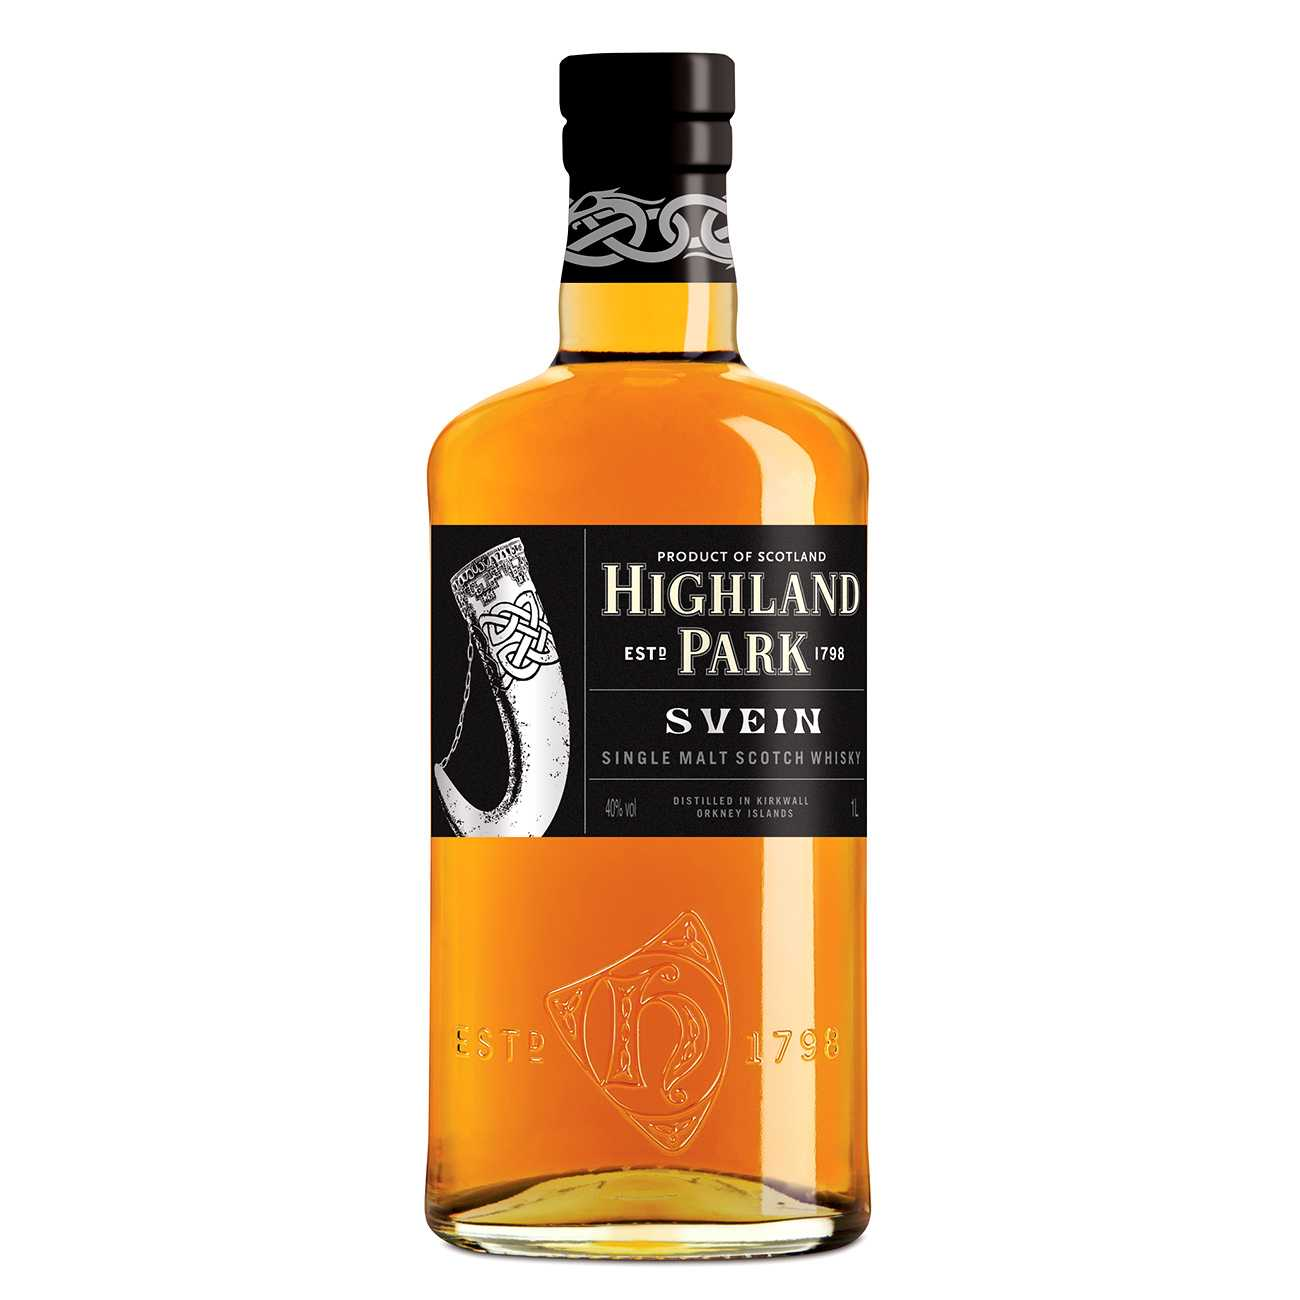 Whisky scotian, SVEIN 1000 ML, Highland Park